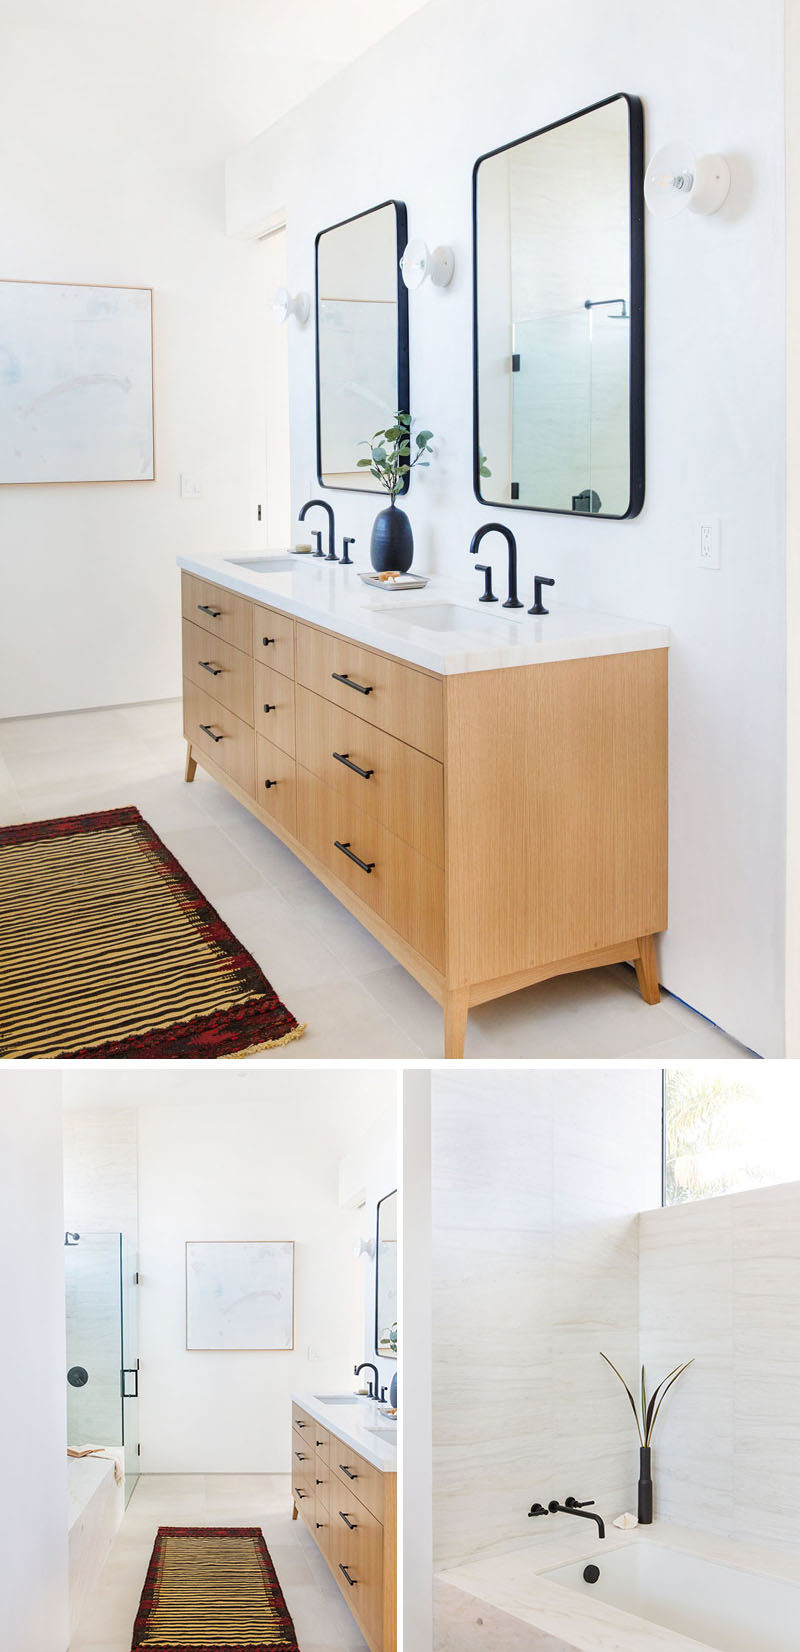 In this contemporary bathroom, a wood double-sink vanity sits opposite the shower with a glass surround and a built-in bathtub. Black framed mirrors break up the white walls. #Bathroom